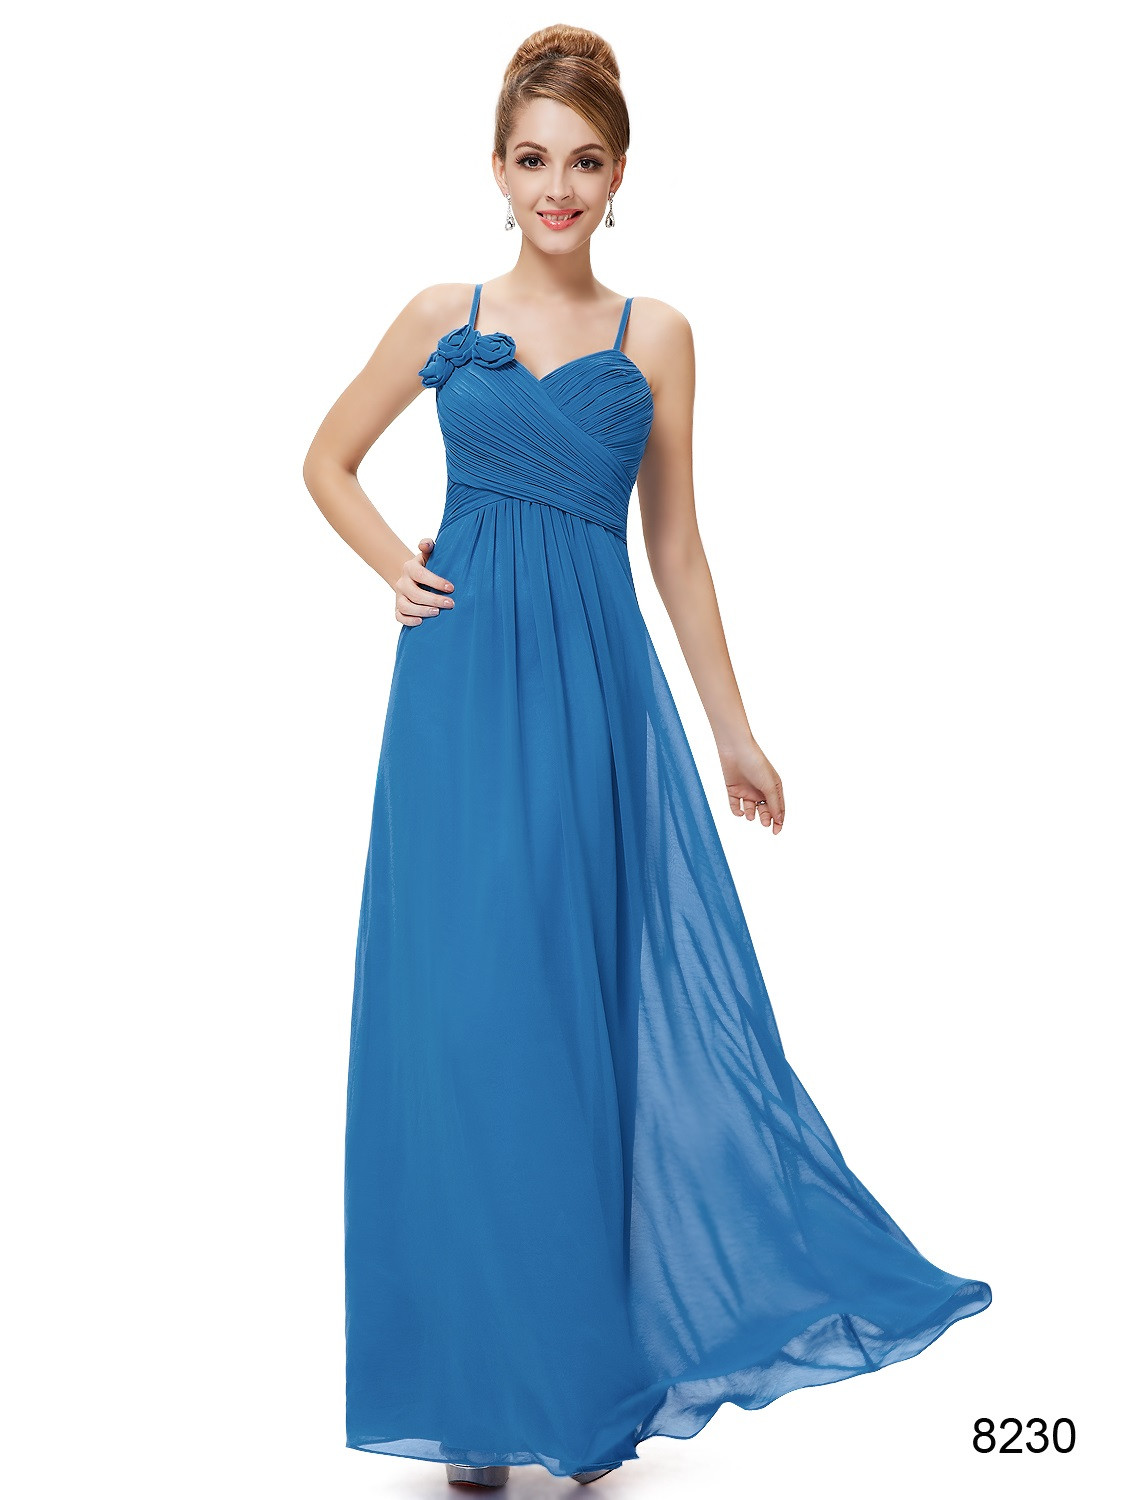 Blue Ruffled Spaghetti Straps Long Bridesmaid Dress